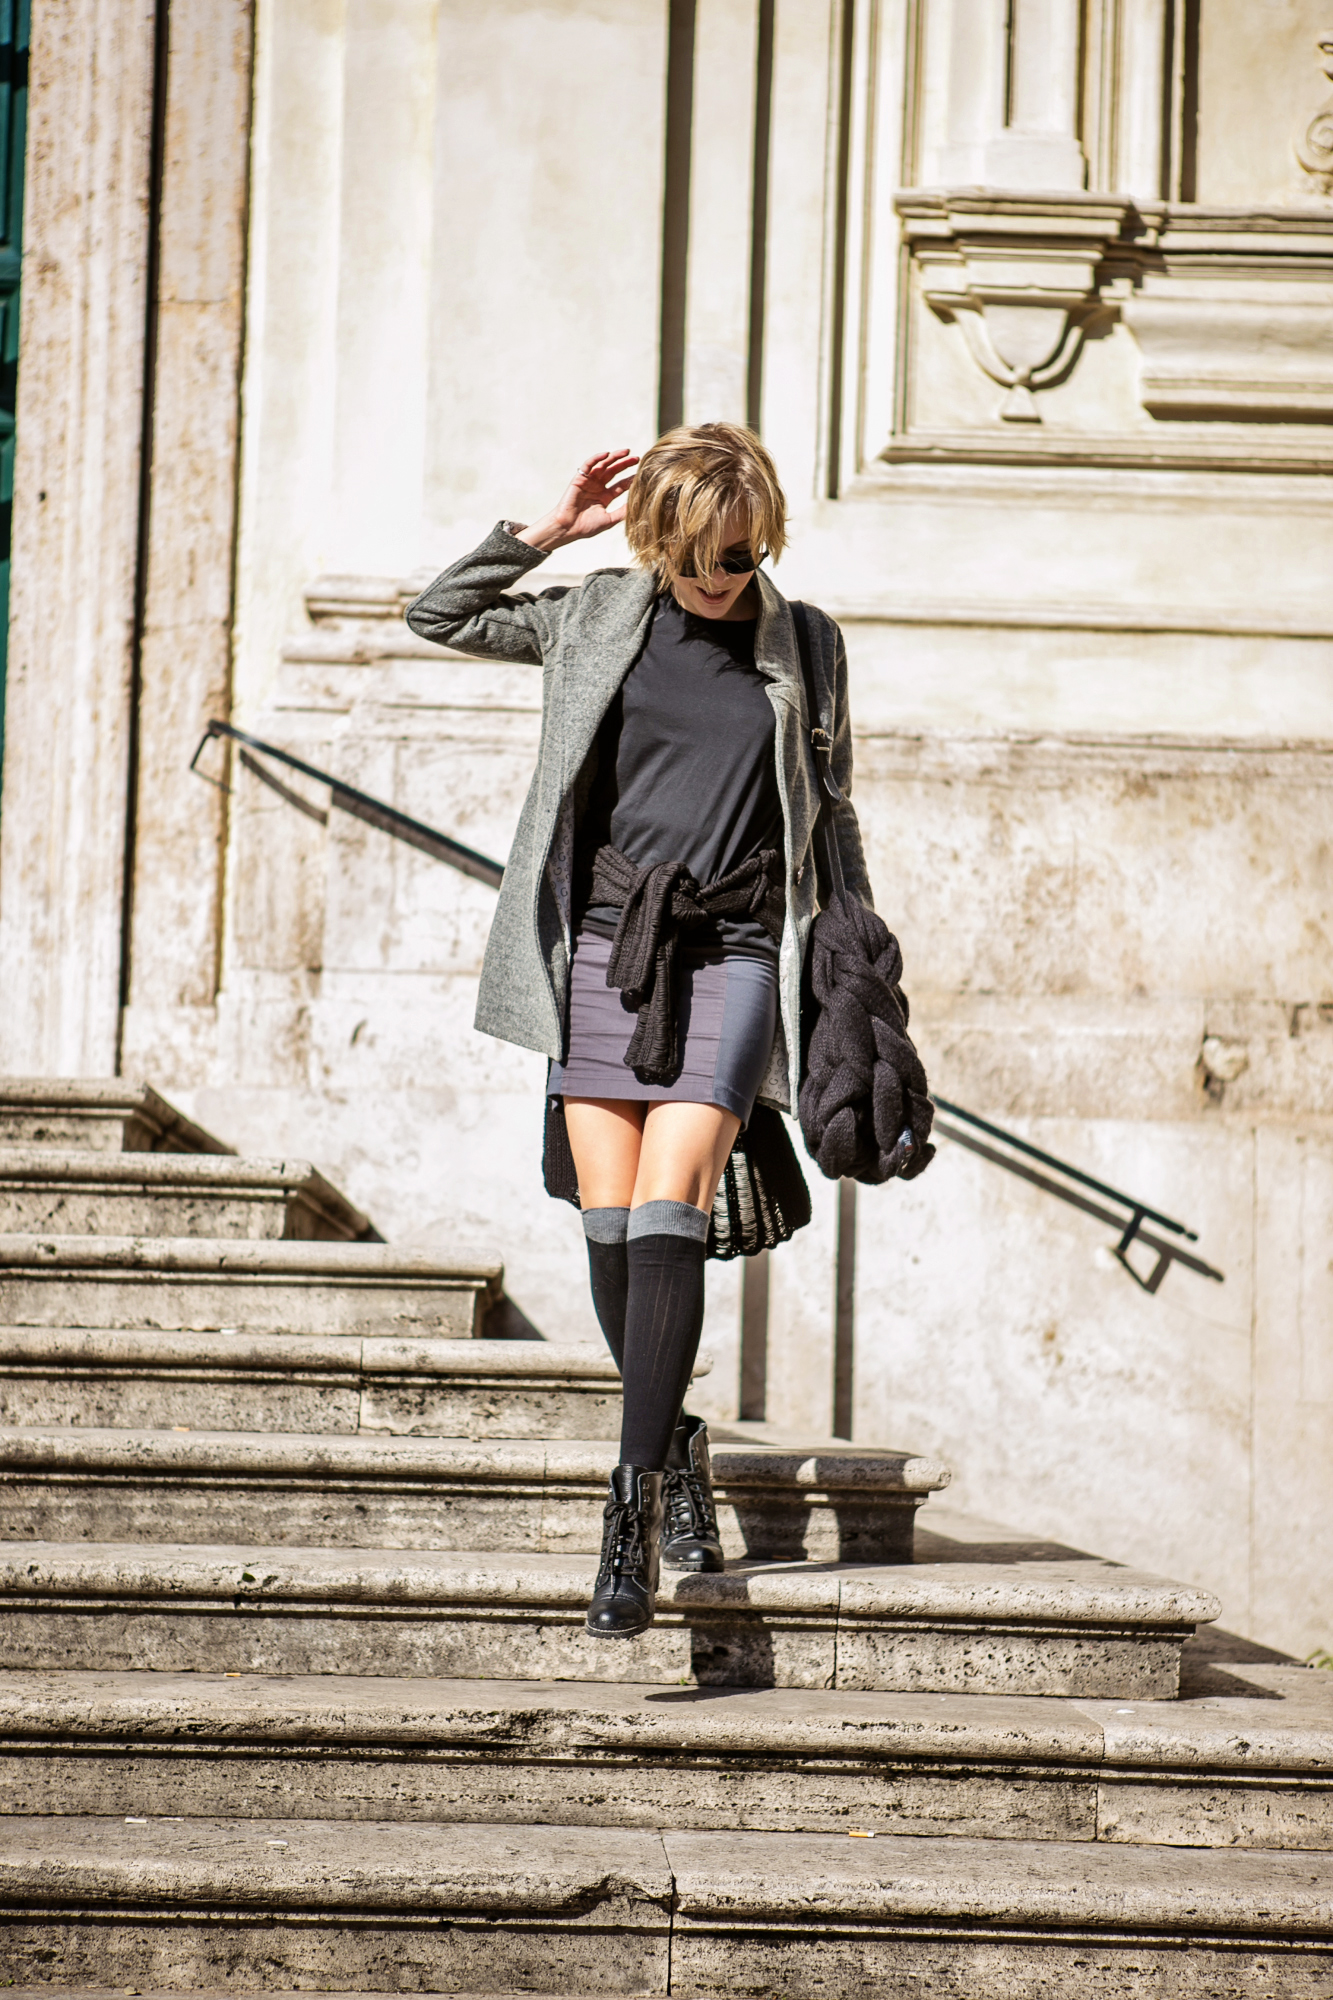 darya kamalova from thecablook com during the trip to Rome walking in the center of the city and wearing chicwish grey coat and laced up booties with proenza schouler ps11 black leather bag-23